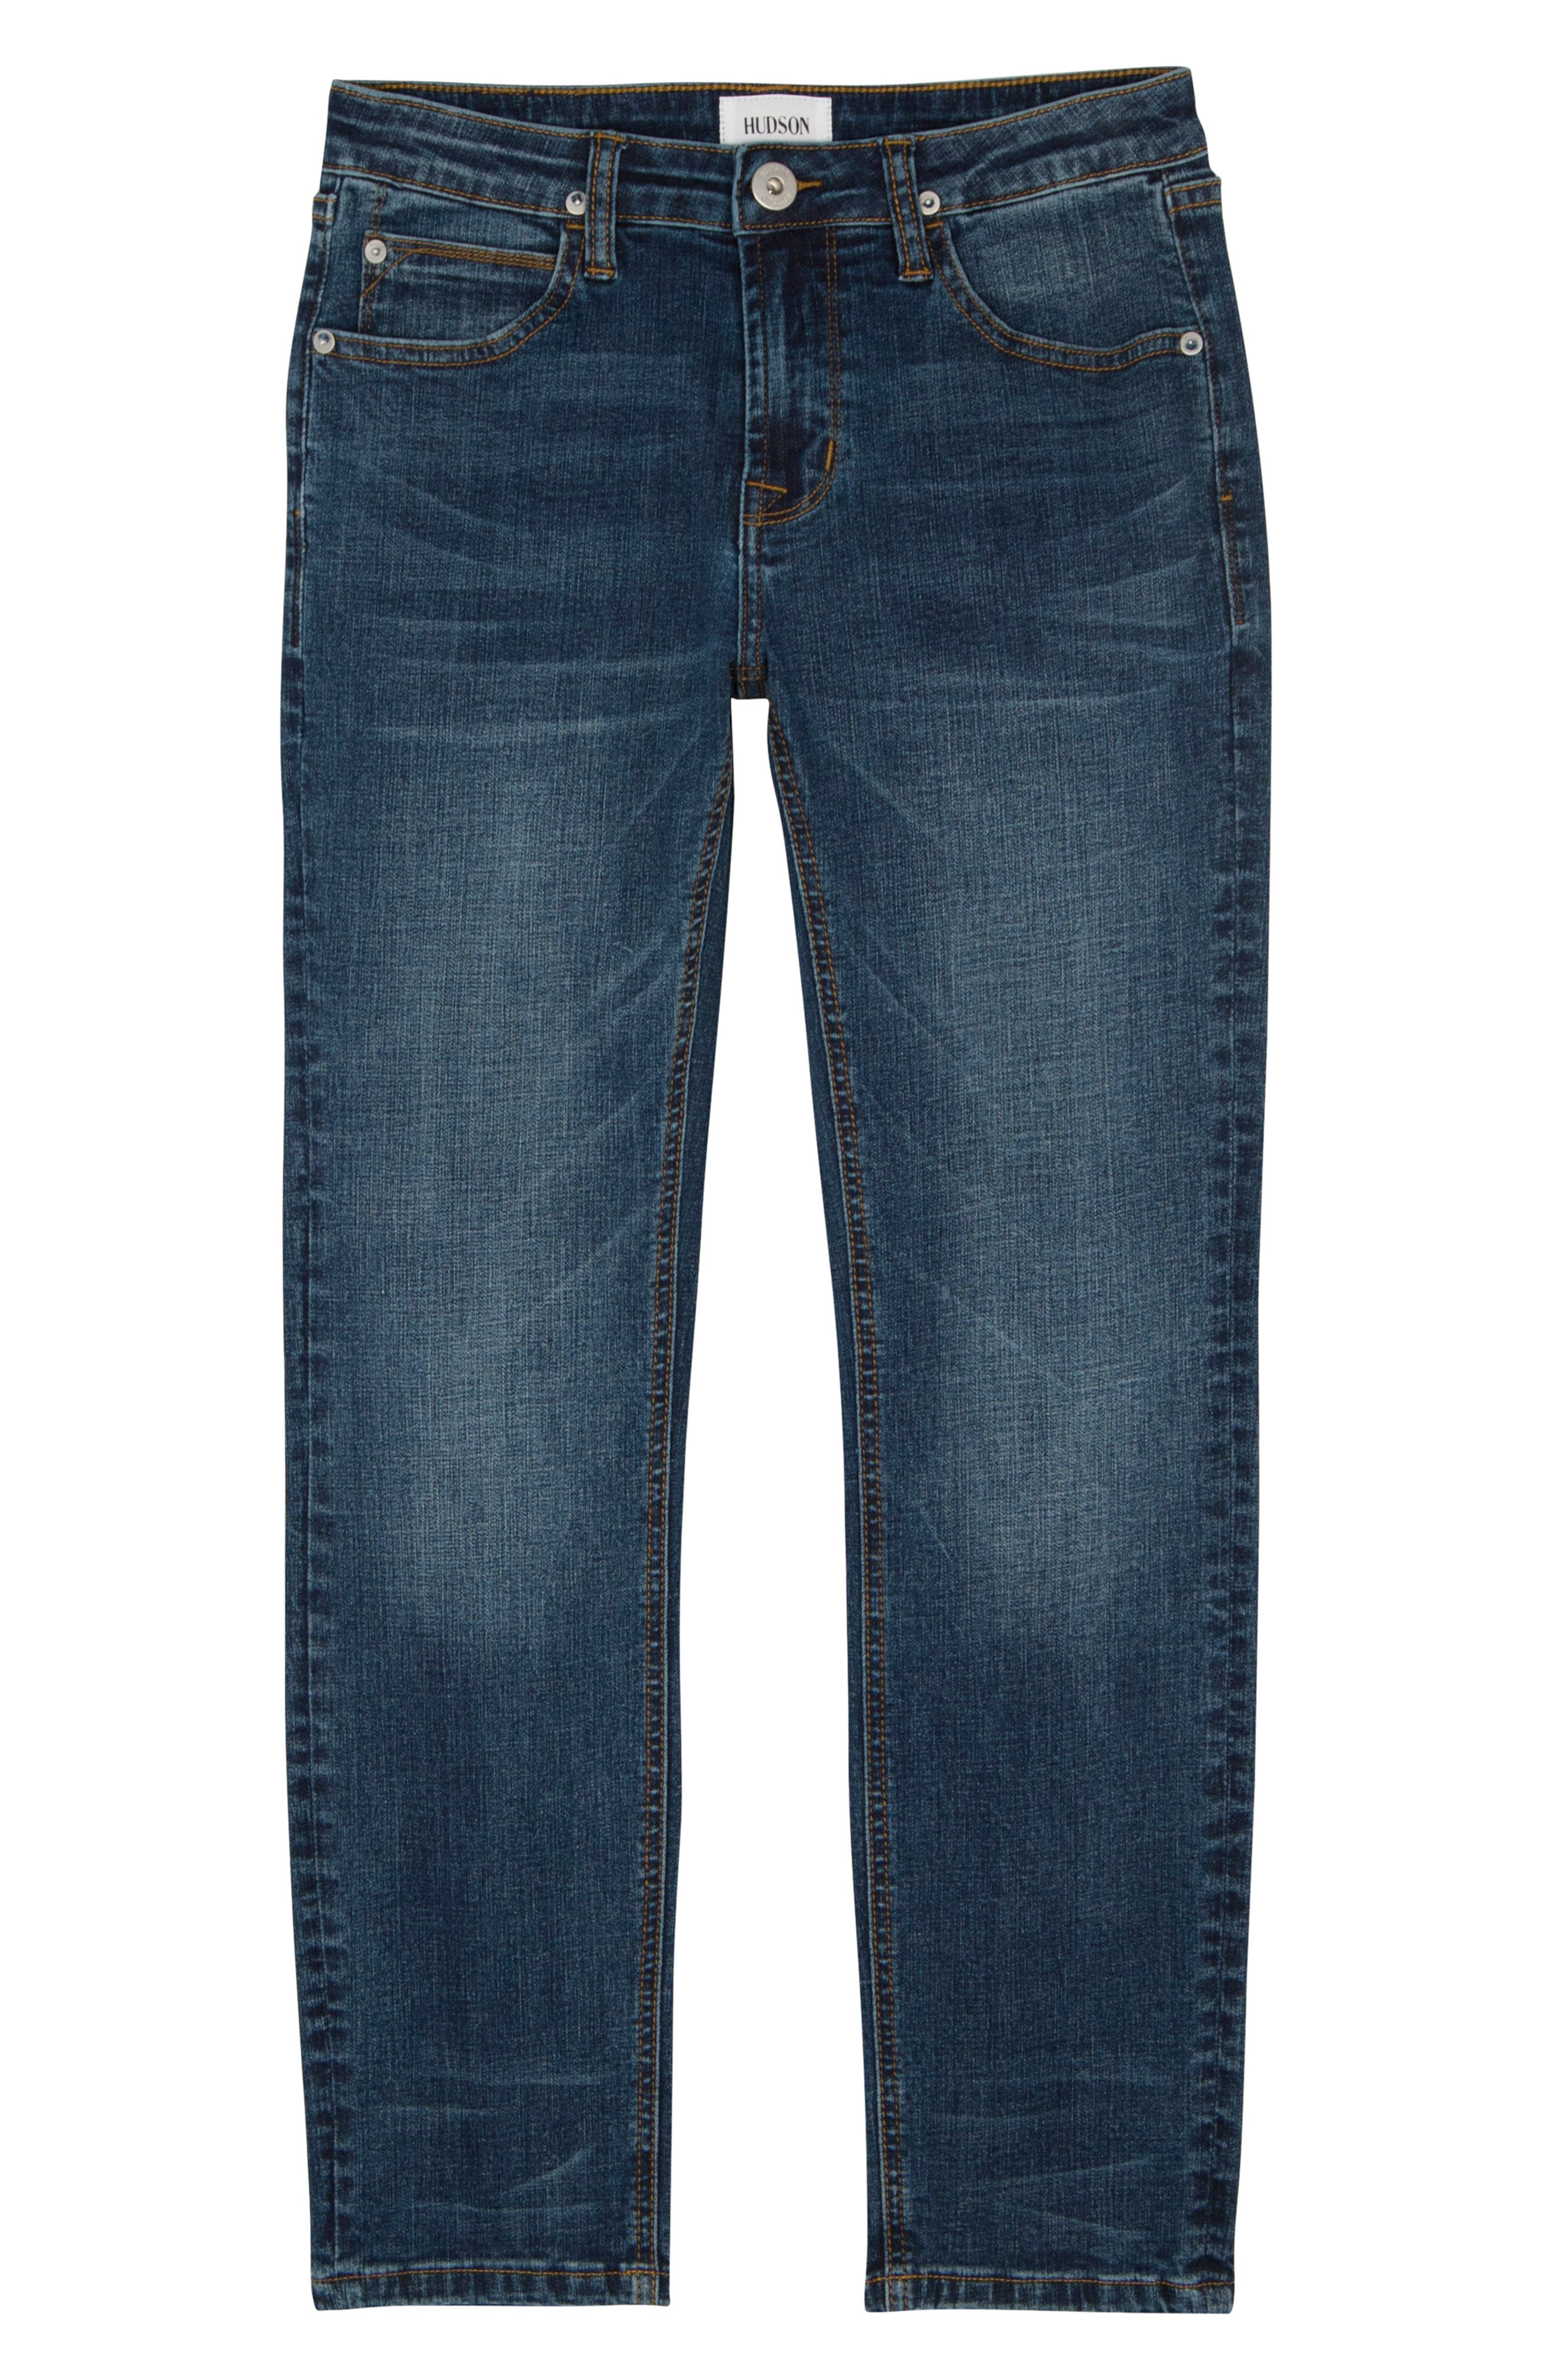 Jude Skinny Jeans,                         Main,                         color, LEGEND WASH GRAPH